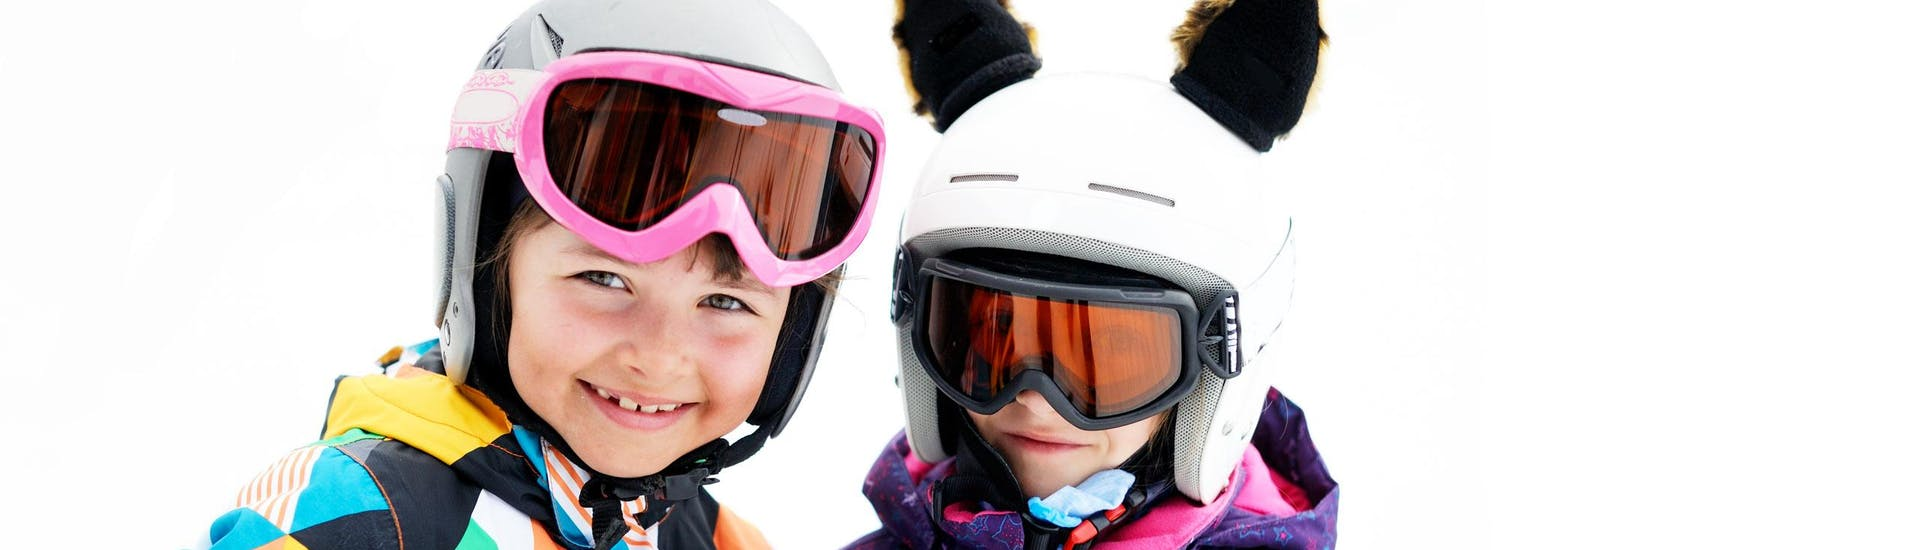 Two young children smiling at the camera during one of the Kids Ski Lessons (5-12 y.) in Bellamonte - Christmas organised by Scuola di Sci Val di Fiemme.